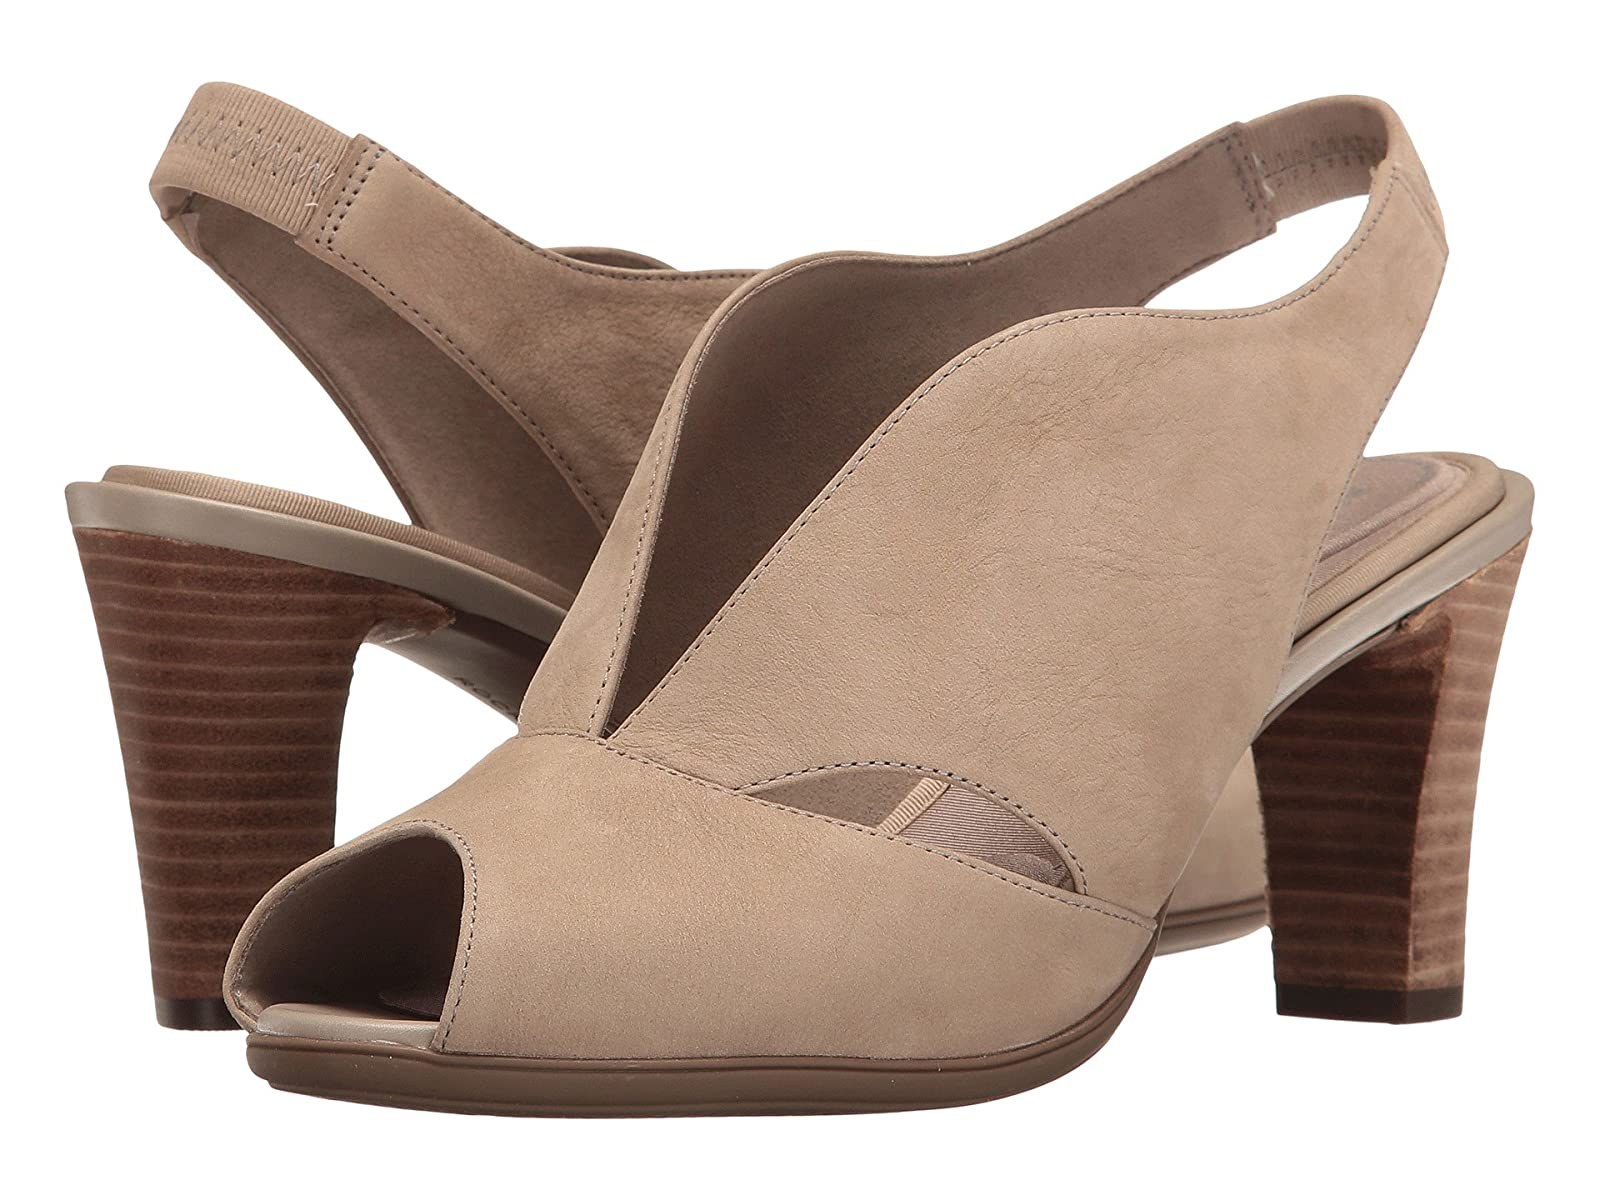 Rockport Total Motion 75mm V-SlingCheap and distinctive eye-catching shoes